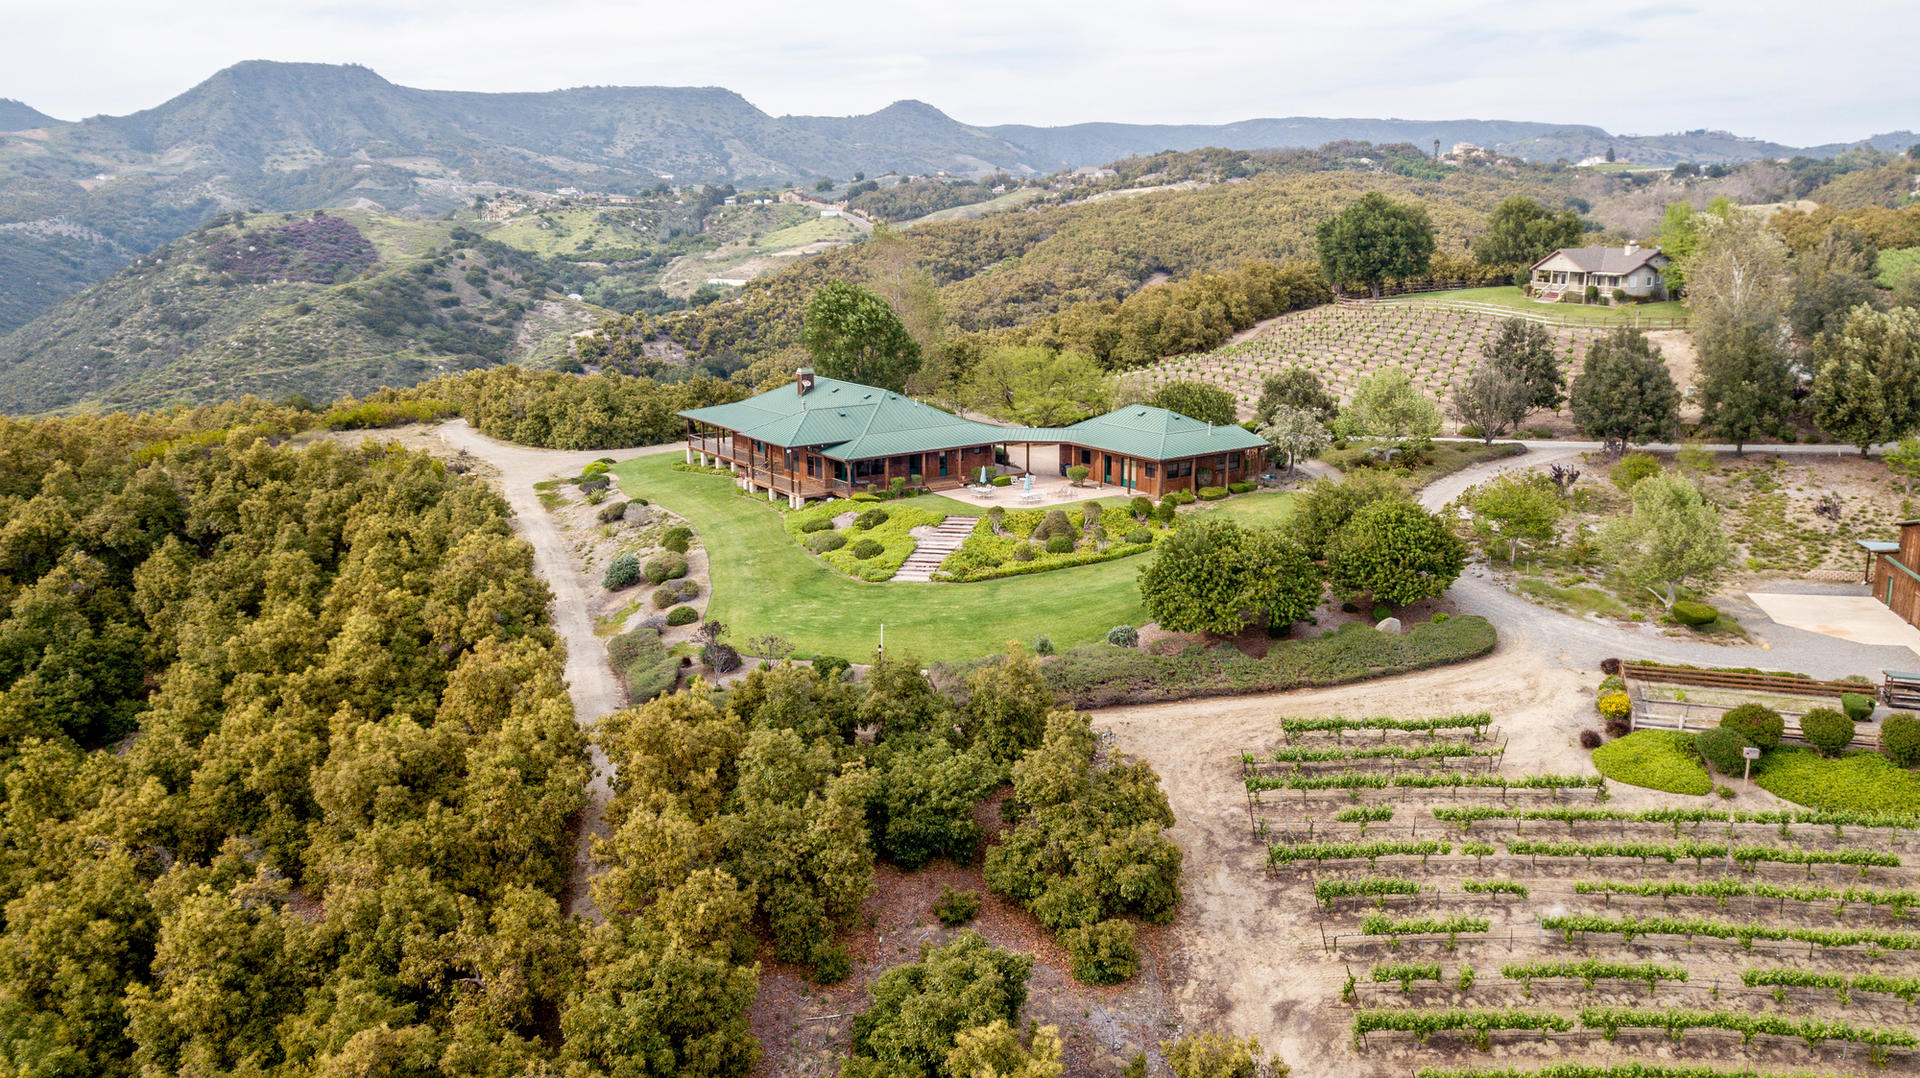 Randhawa Ranch Overview; Lower House and Barn North. No access to Upper House